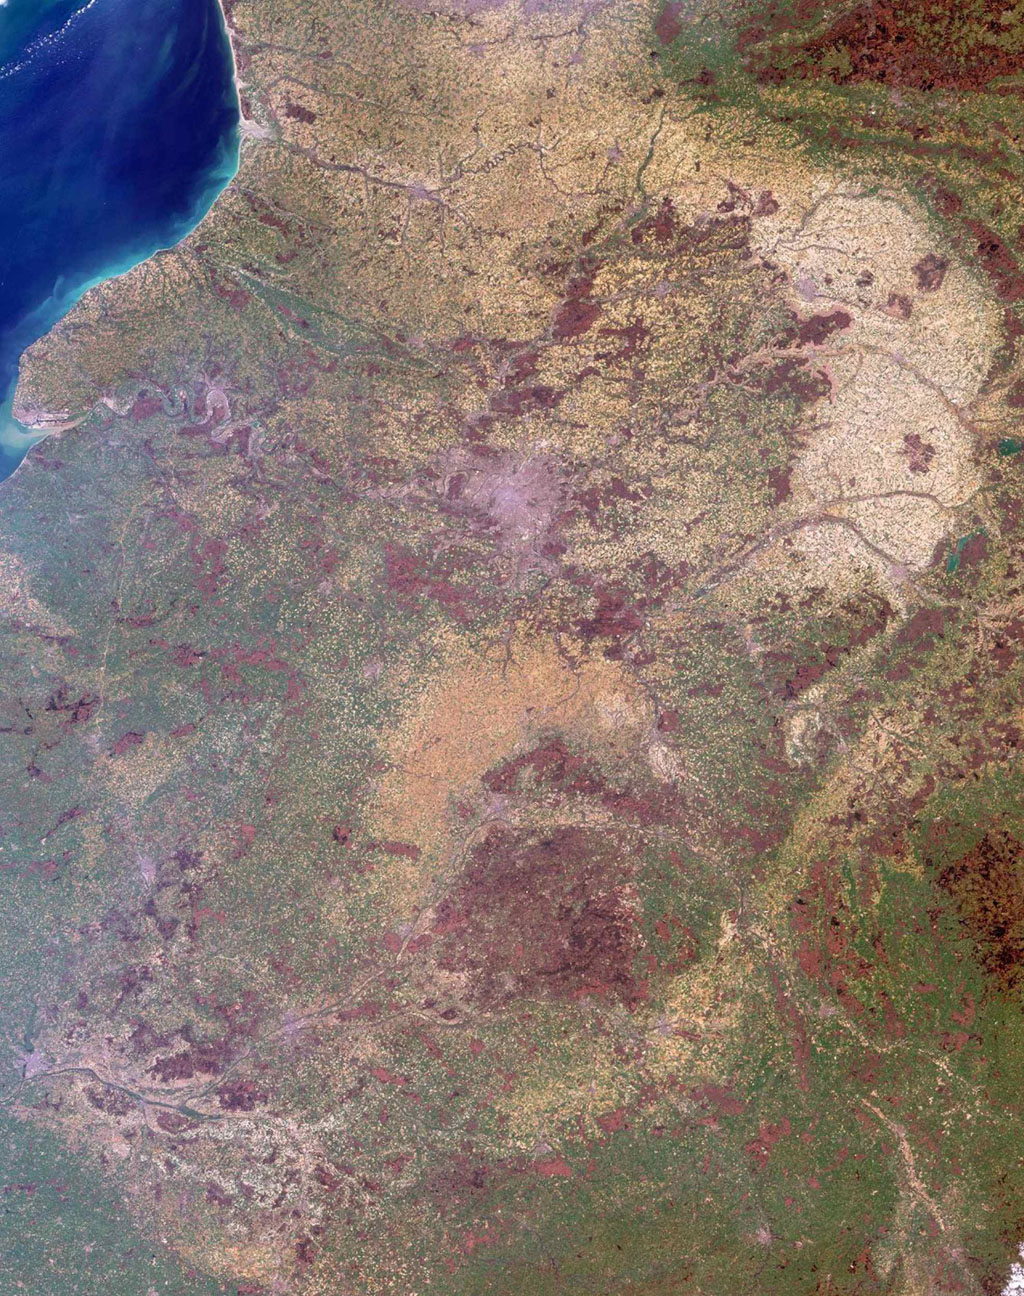 Space Images | Where On Earth? Misr Mystery Image Quiz tout Quiz Régions De France